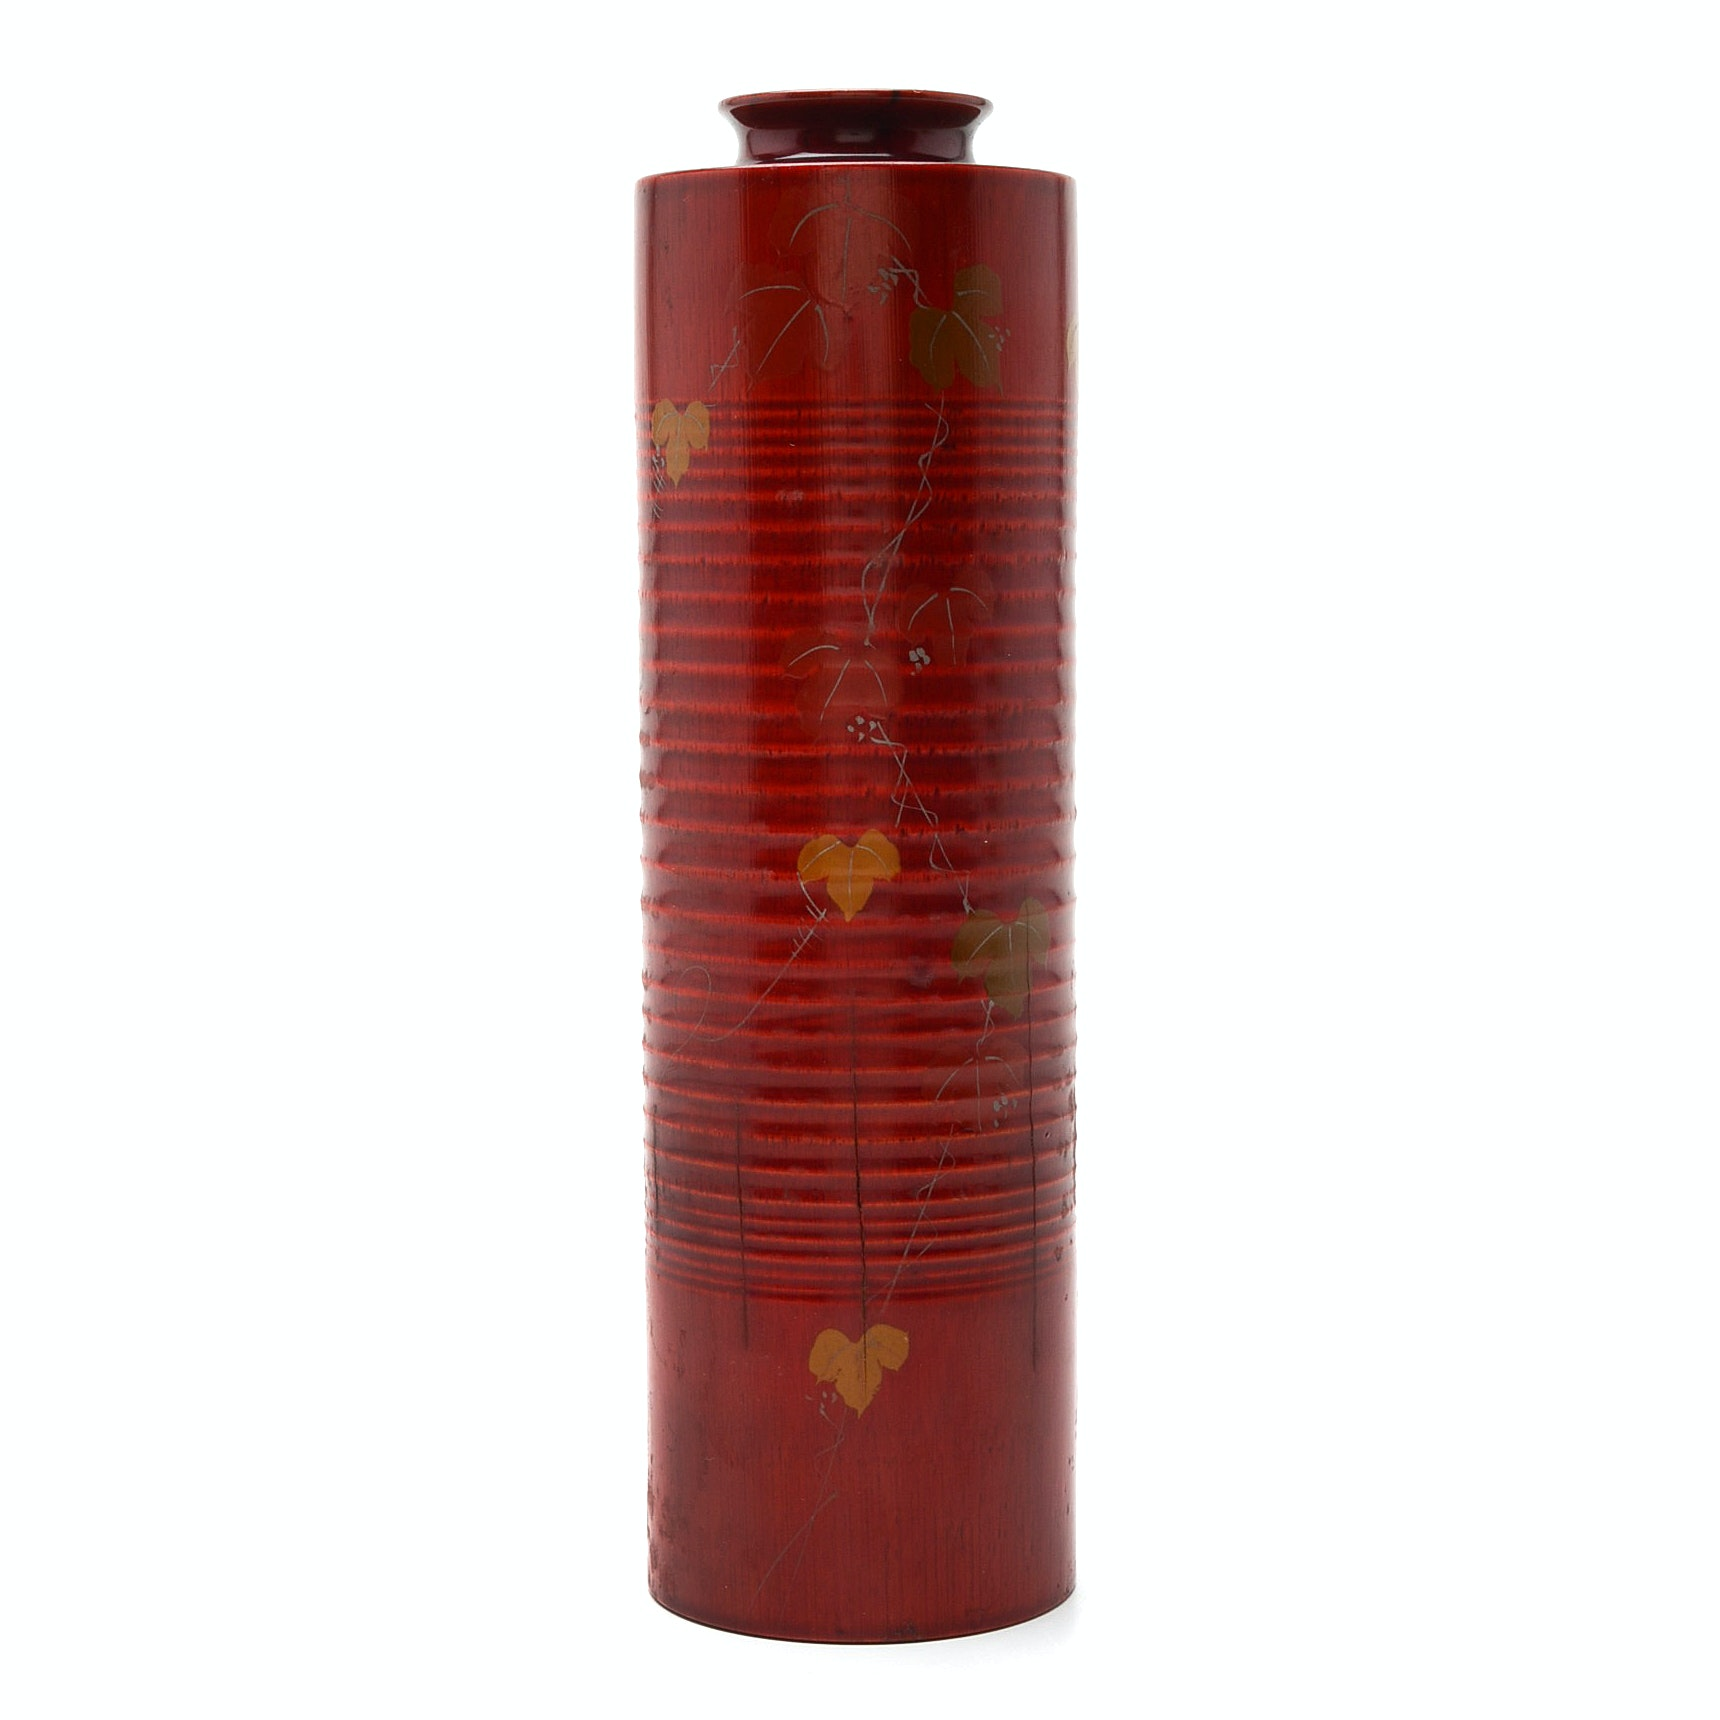 Japanese Red Lacquer Cylindrical Vase